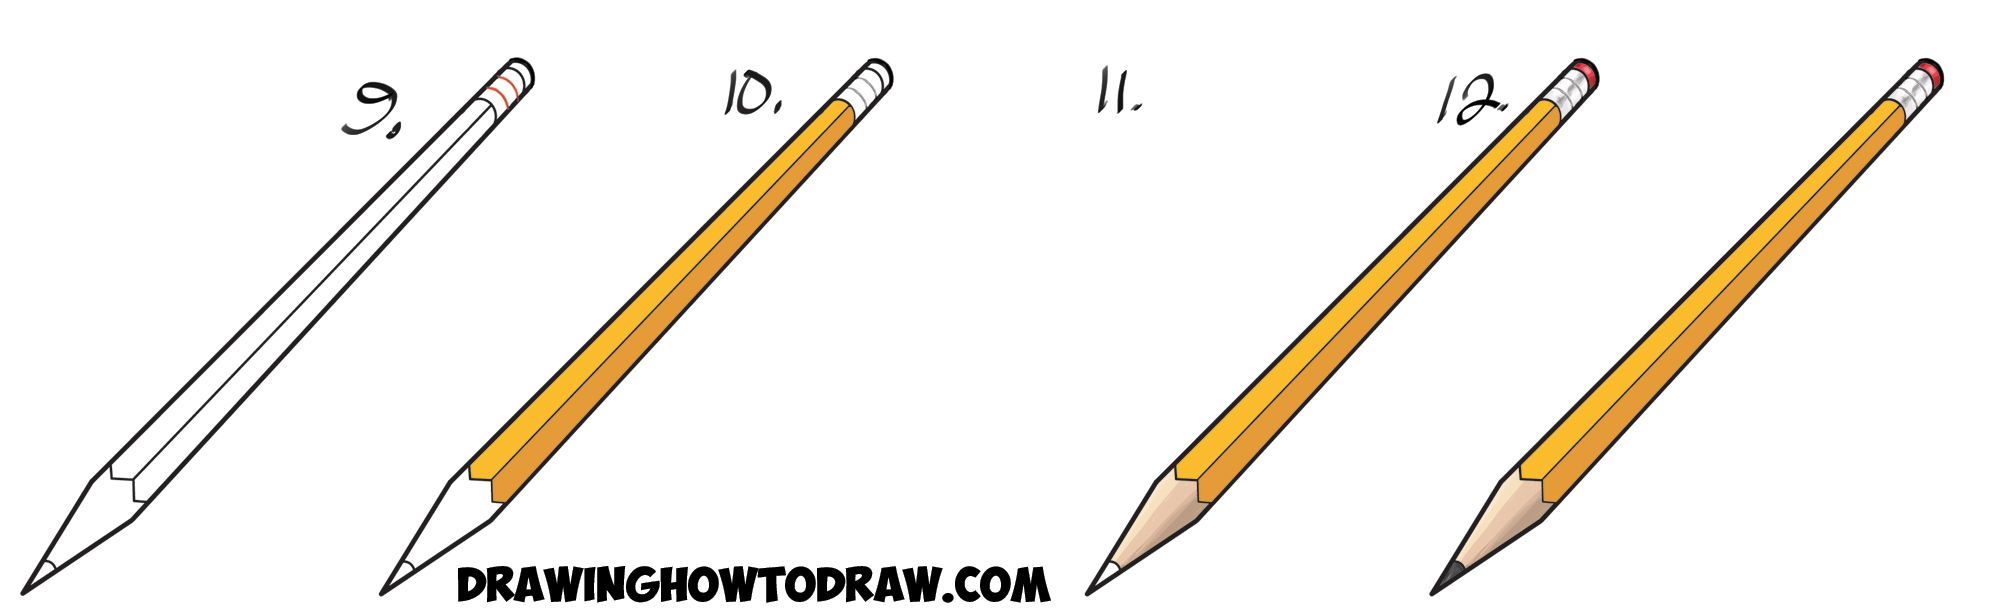 How to draw a pencil 73